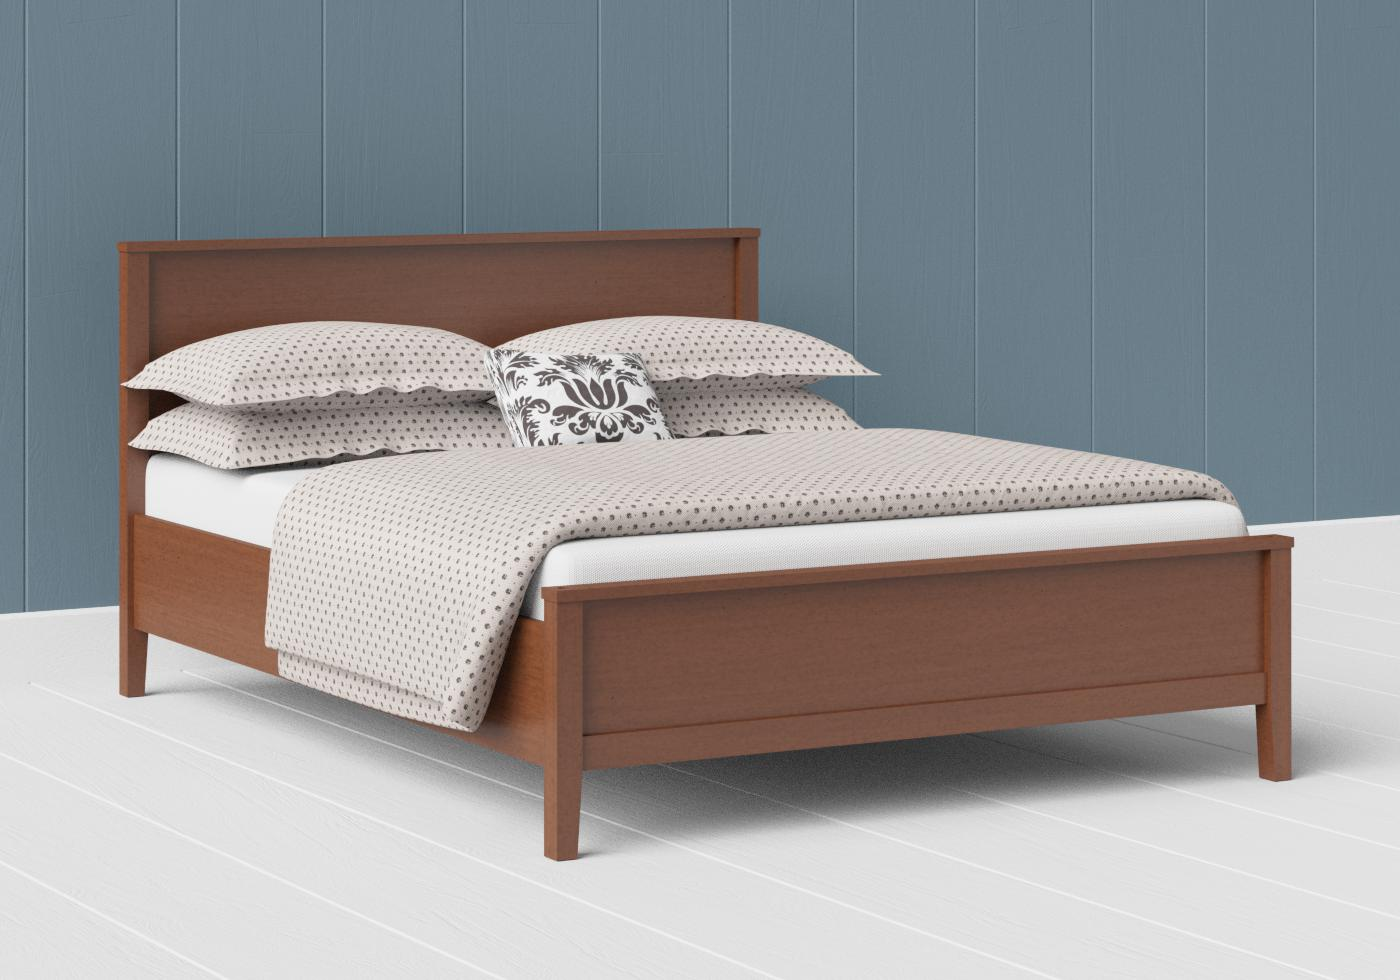 Ramsay low footend wood bed in a dark cherry finish